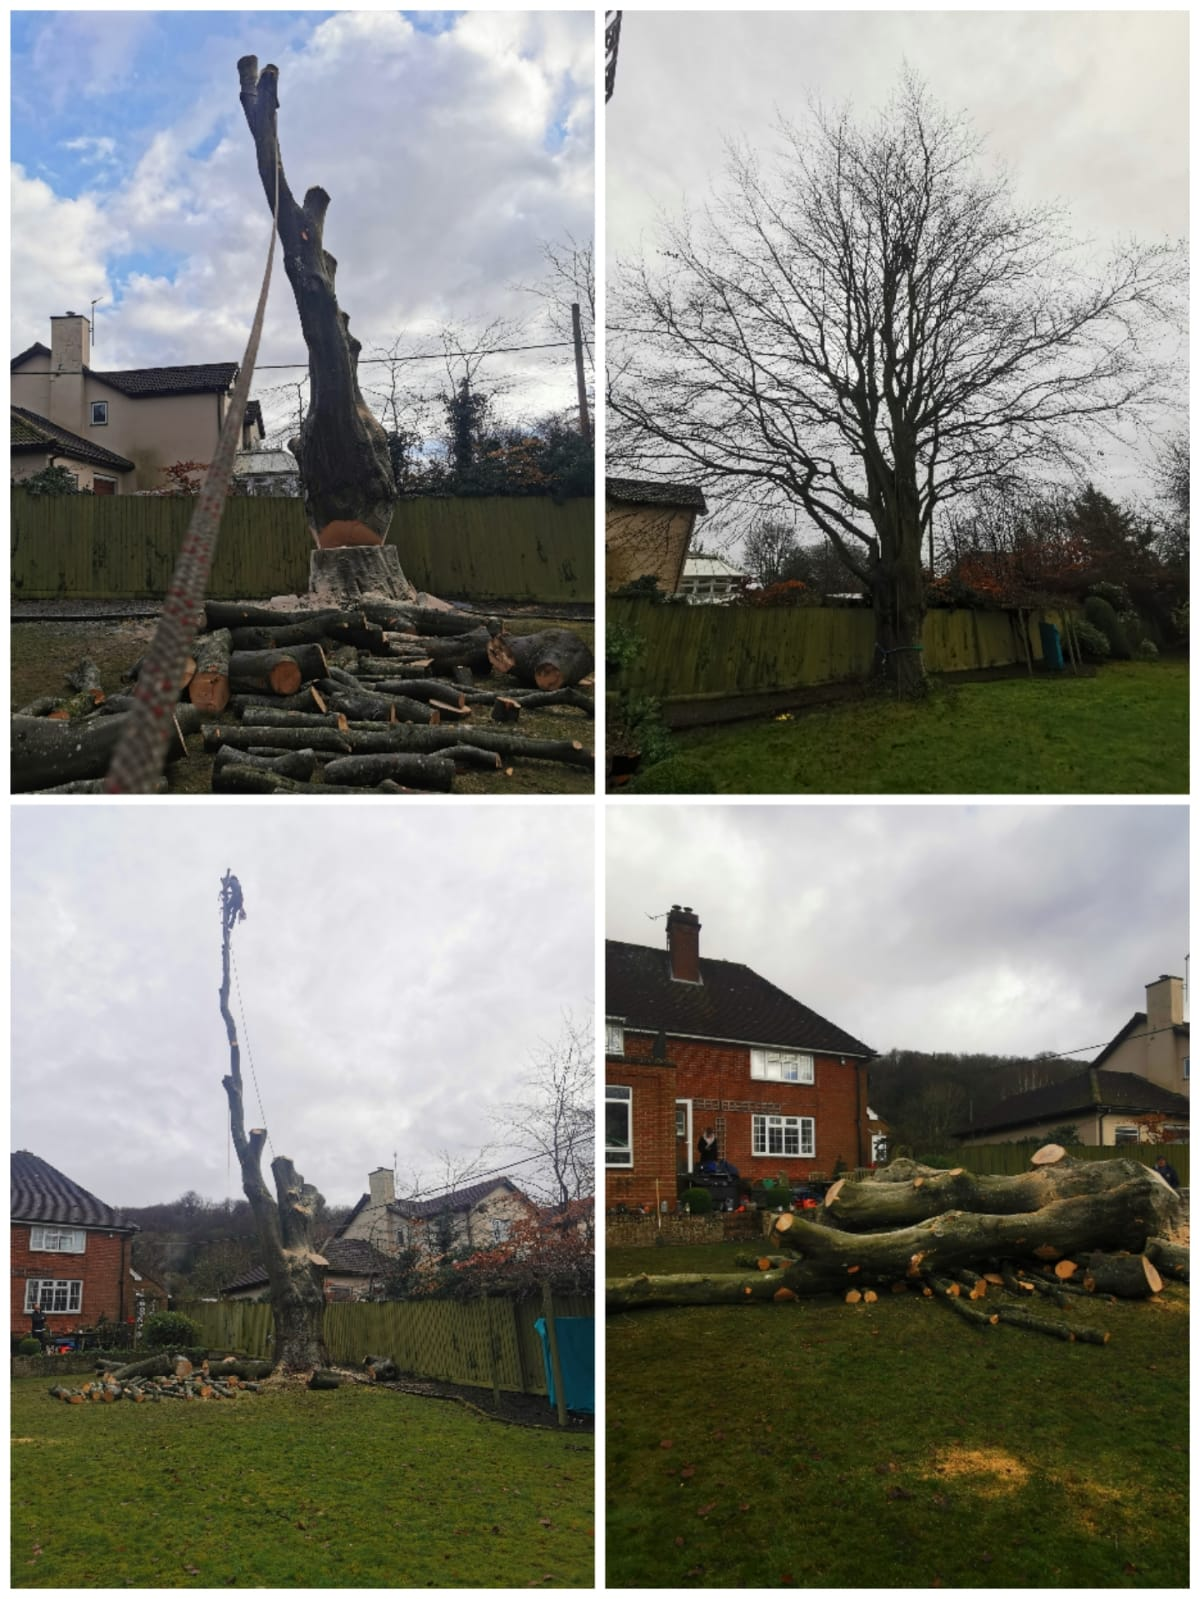 Taking down a beech tree in Fovant, Wiltshire